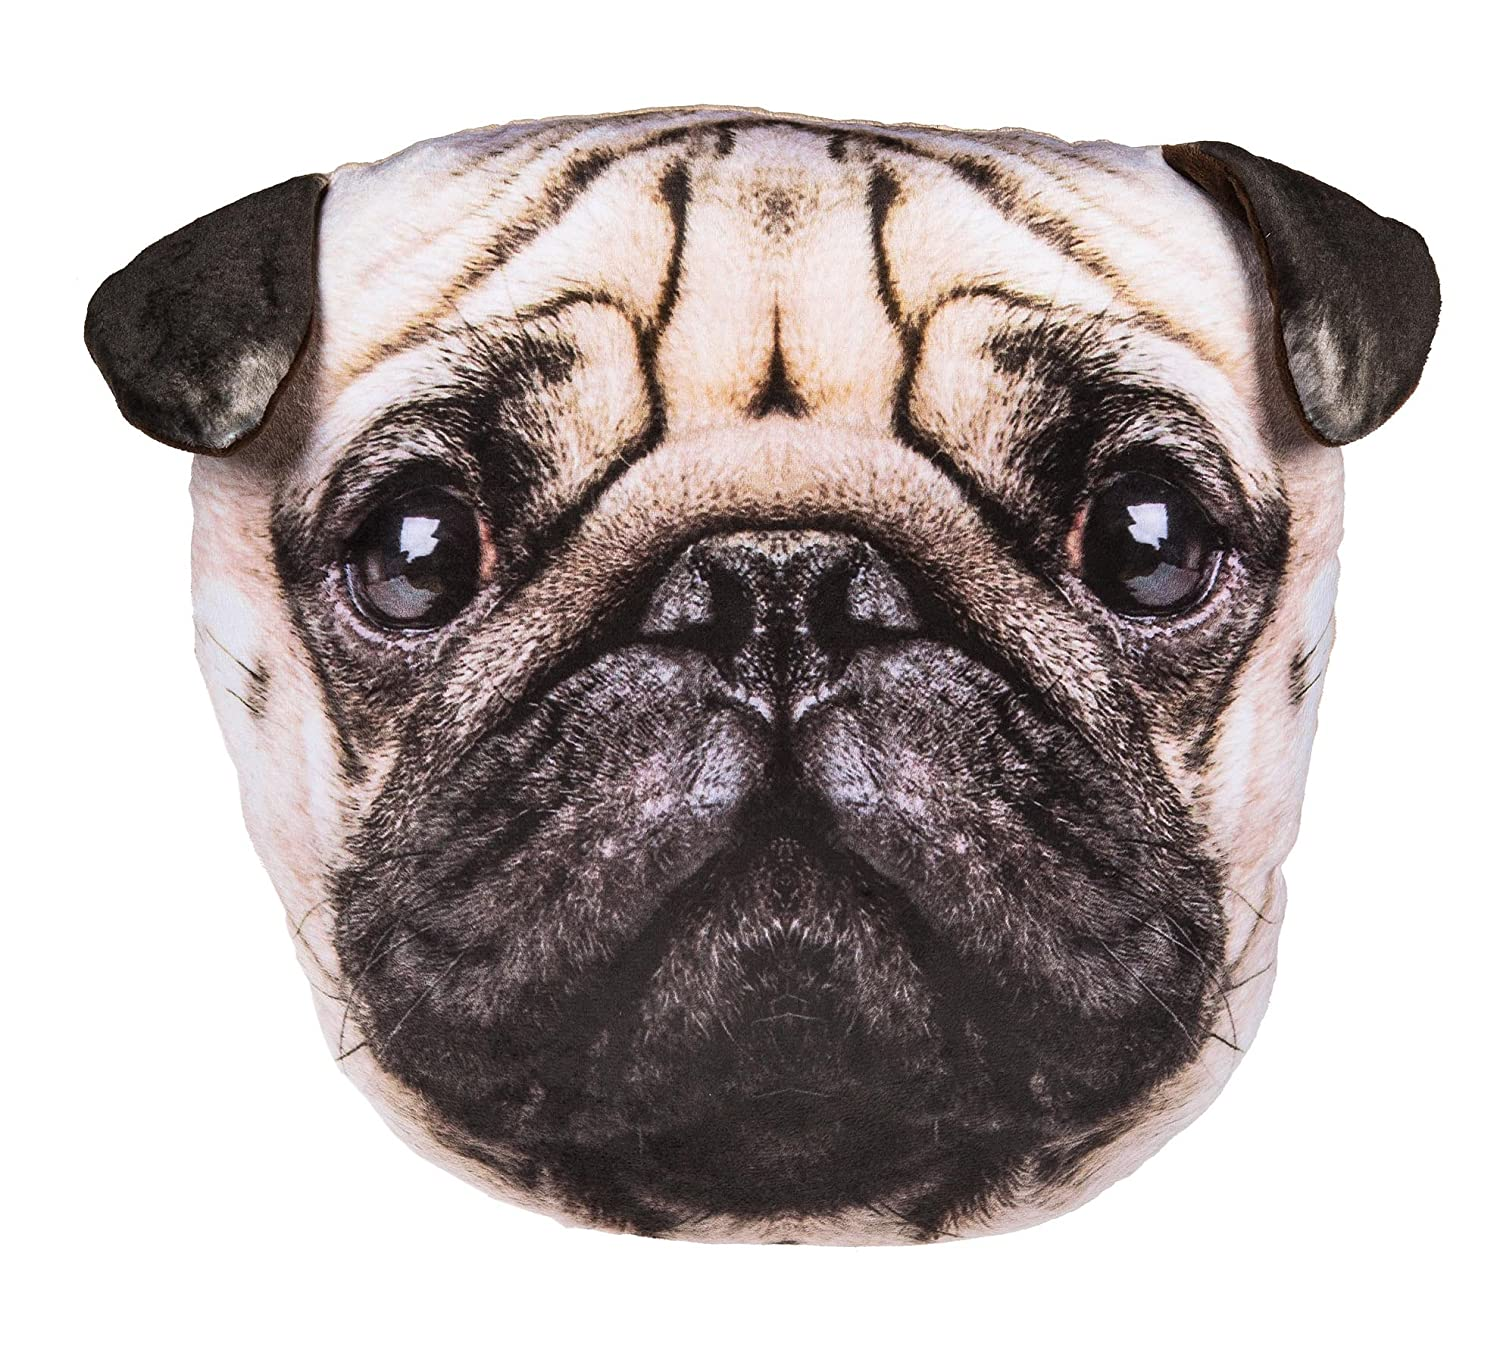 Adorably Cute Pug Dog Decoration Cushion - Number One Girl Girls Boy Boys Children Kids Child Great Gift Present Idea for Birthdays Christmas Xmas Stocking Fillers Top Ups Treats Rewards Pocket Money Easter Fun Toys & Games - One Supplied Kenzies Gifts